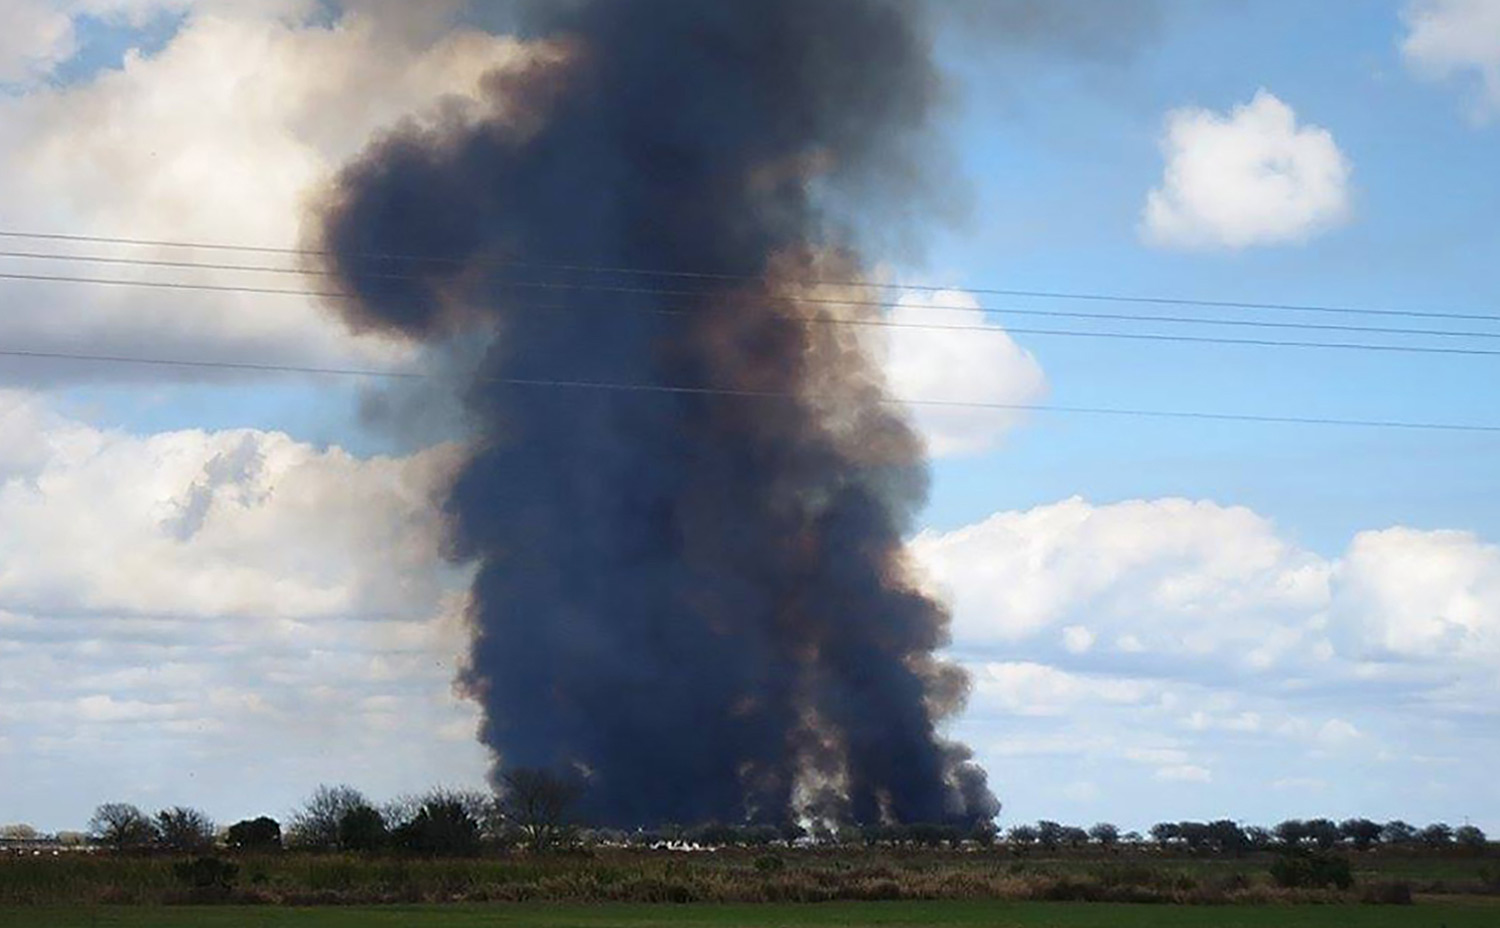 A plume of black smoke rises from a sugarcane burn outside of Clewiston, Florida.